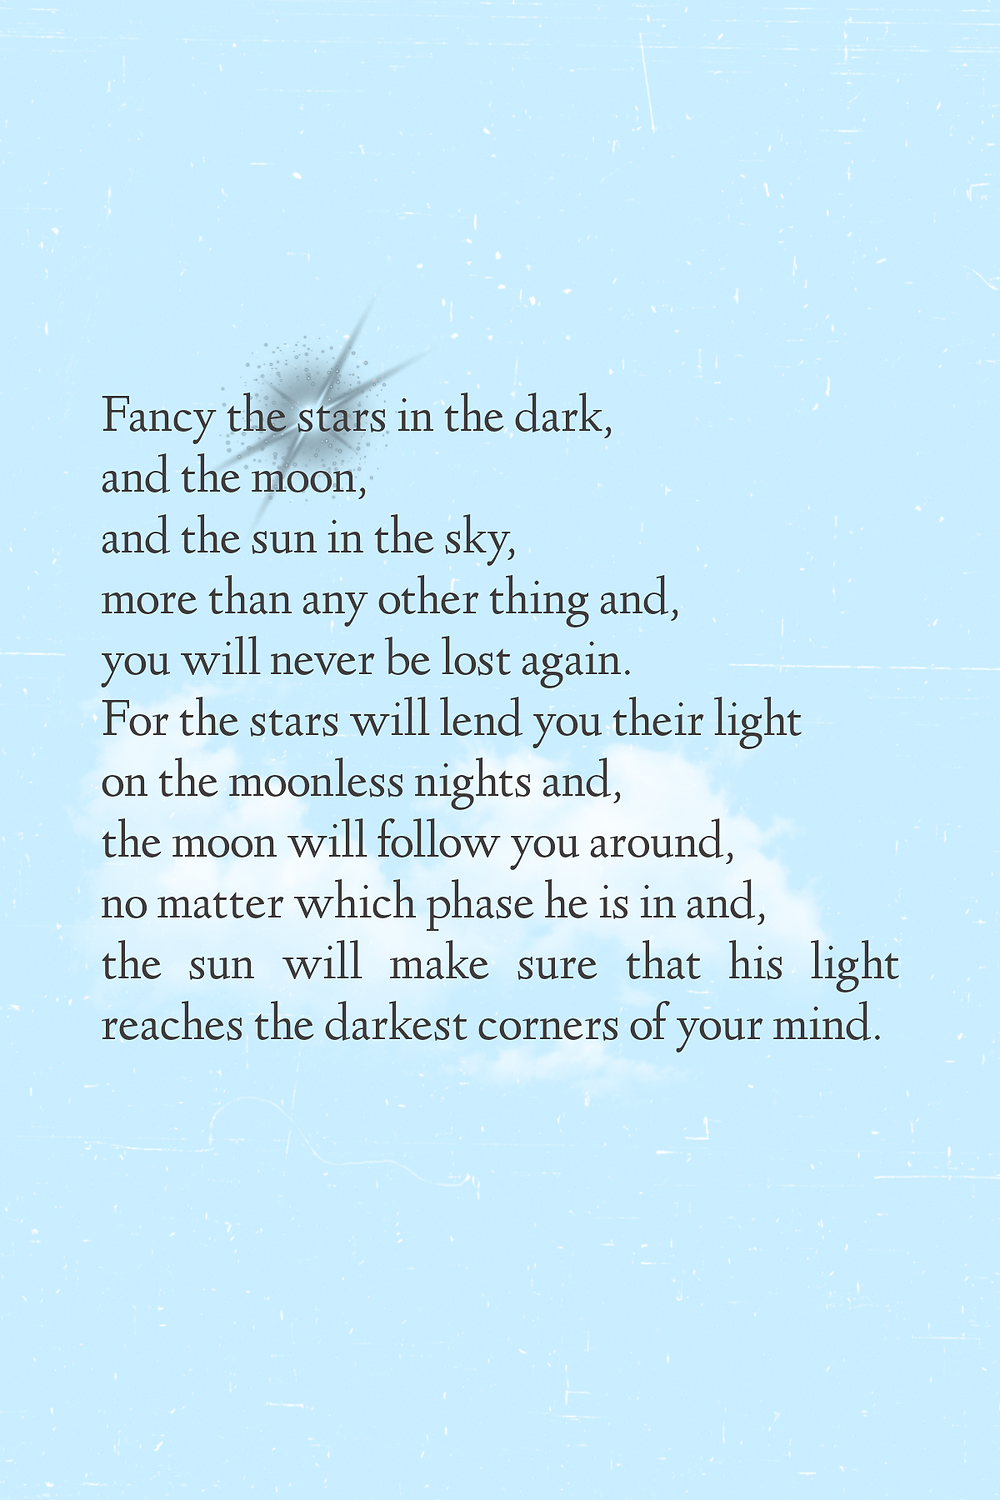 inspirational poem about stars